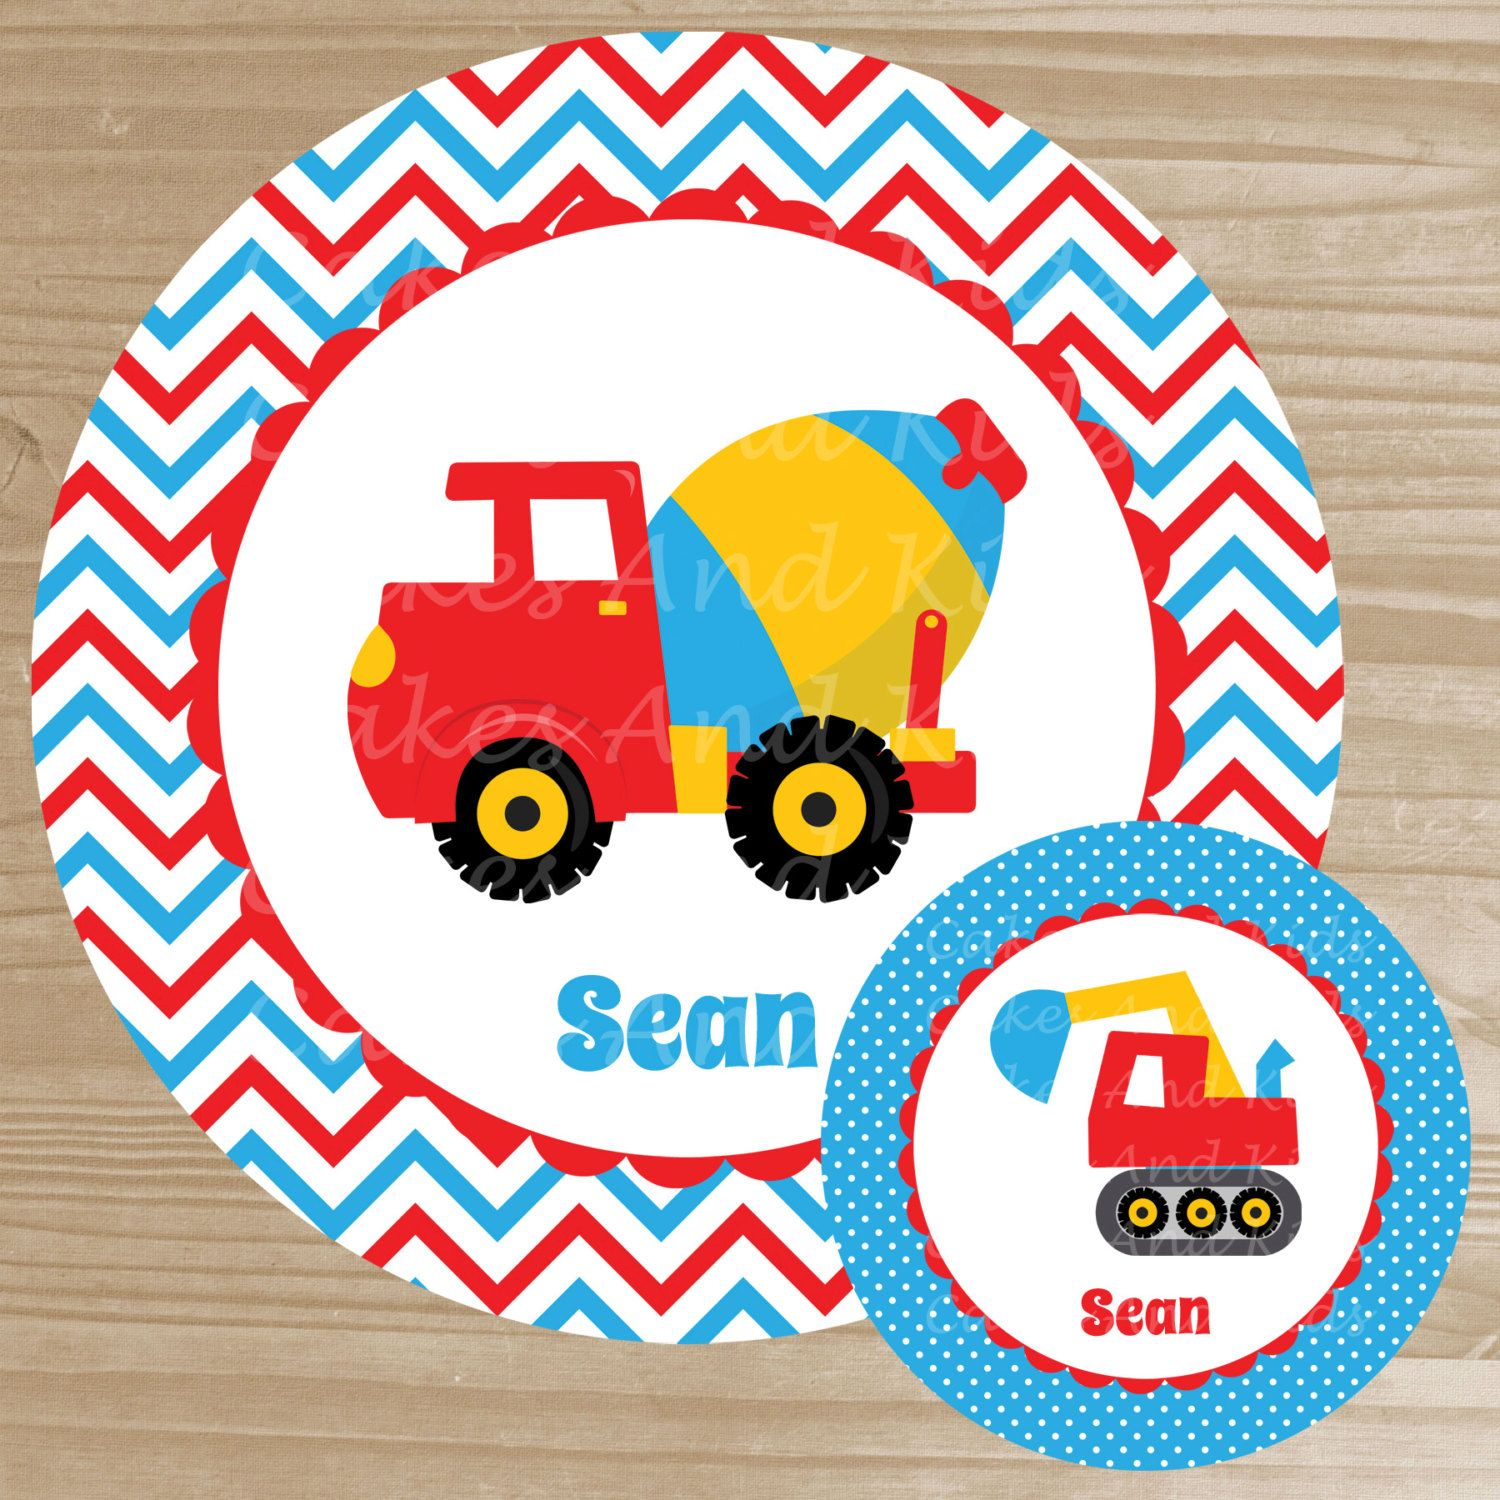 Personalized Kids Plate And Bowl Set Kids Plates Construction For Kids Mugs Set